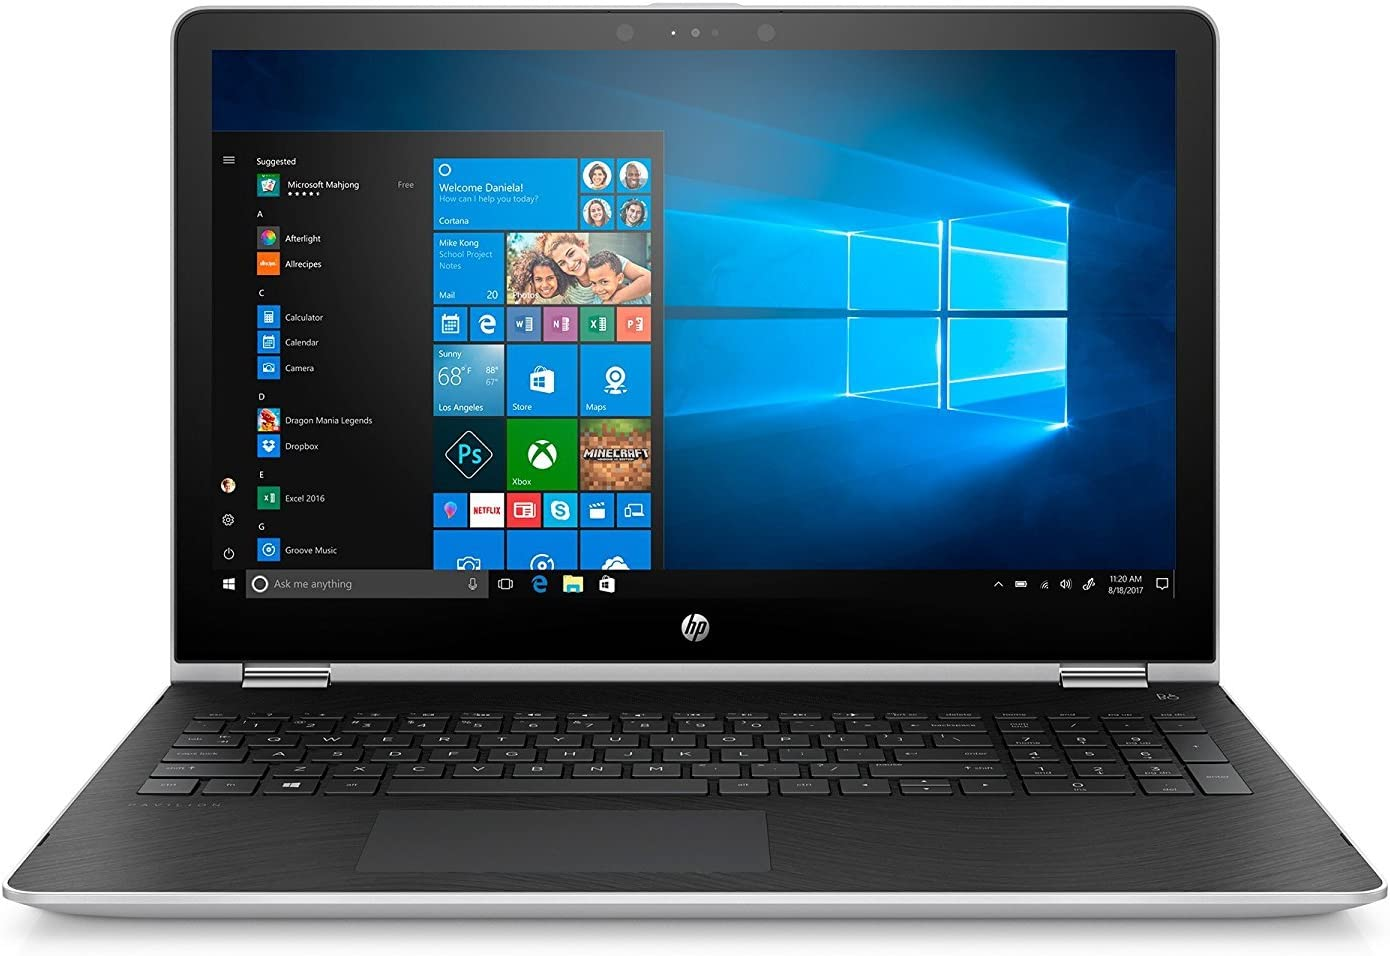 2018 Flagship HP X360 15.6 Inch Full HD Touchscreen 2-in-1 Laptop with Stylus Pen (Intel Core i5-7200U, 8GB RAM, 128GB SSD, AMD Radeon 530 2GB Dedicated, Bluetooth, Windows 10)